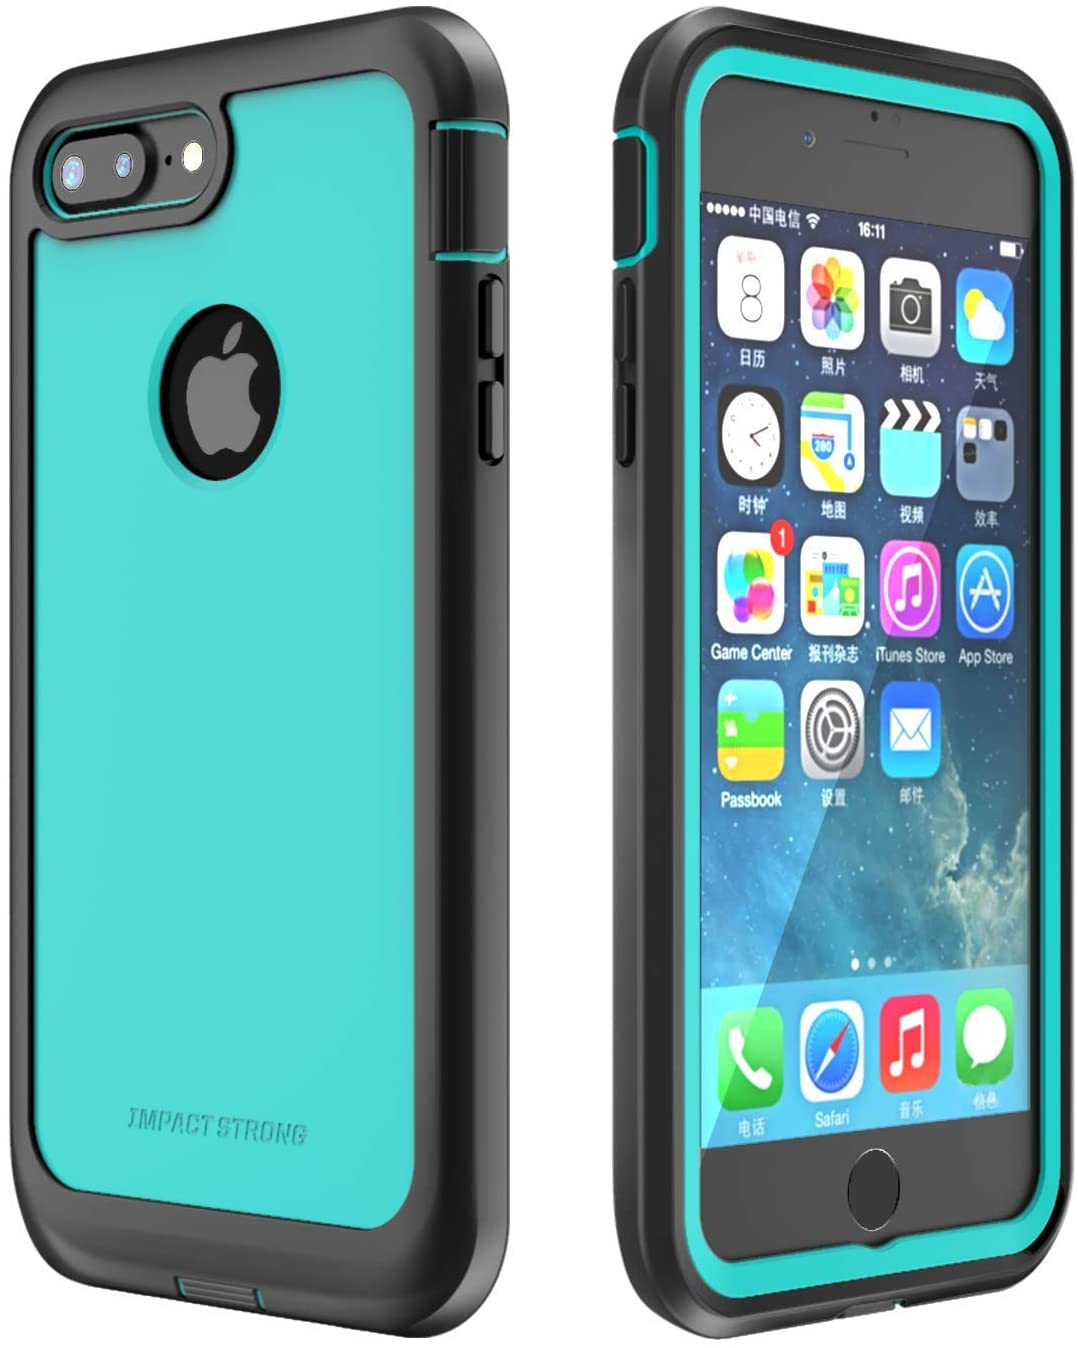 IMPACTSTRONG iPhone 7 Plus/iPhone 8 Plus Case, Ultra Protective Case with Built-in Clear Screen Protector Full Body Cover for iPhone 7 Plus/iPhone 8 Plus (Ocean Blue)